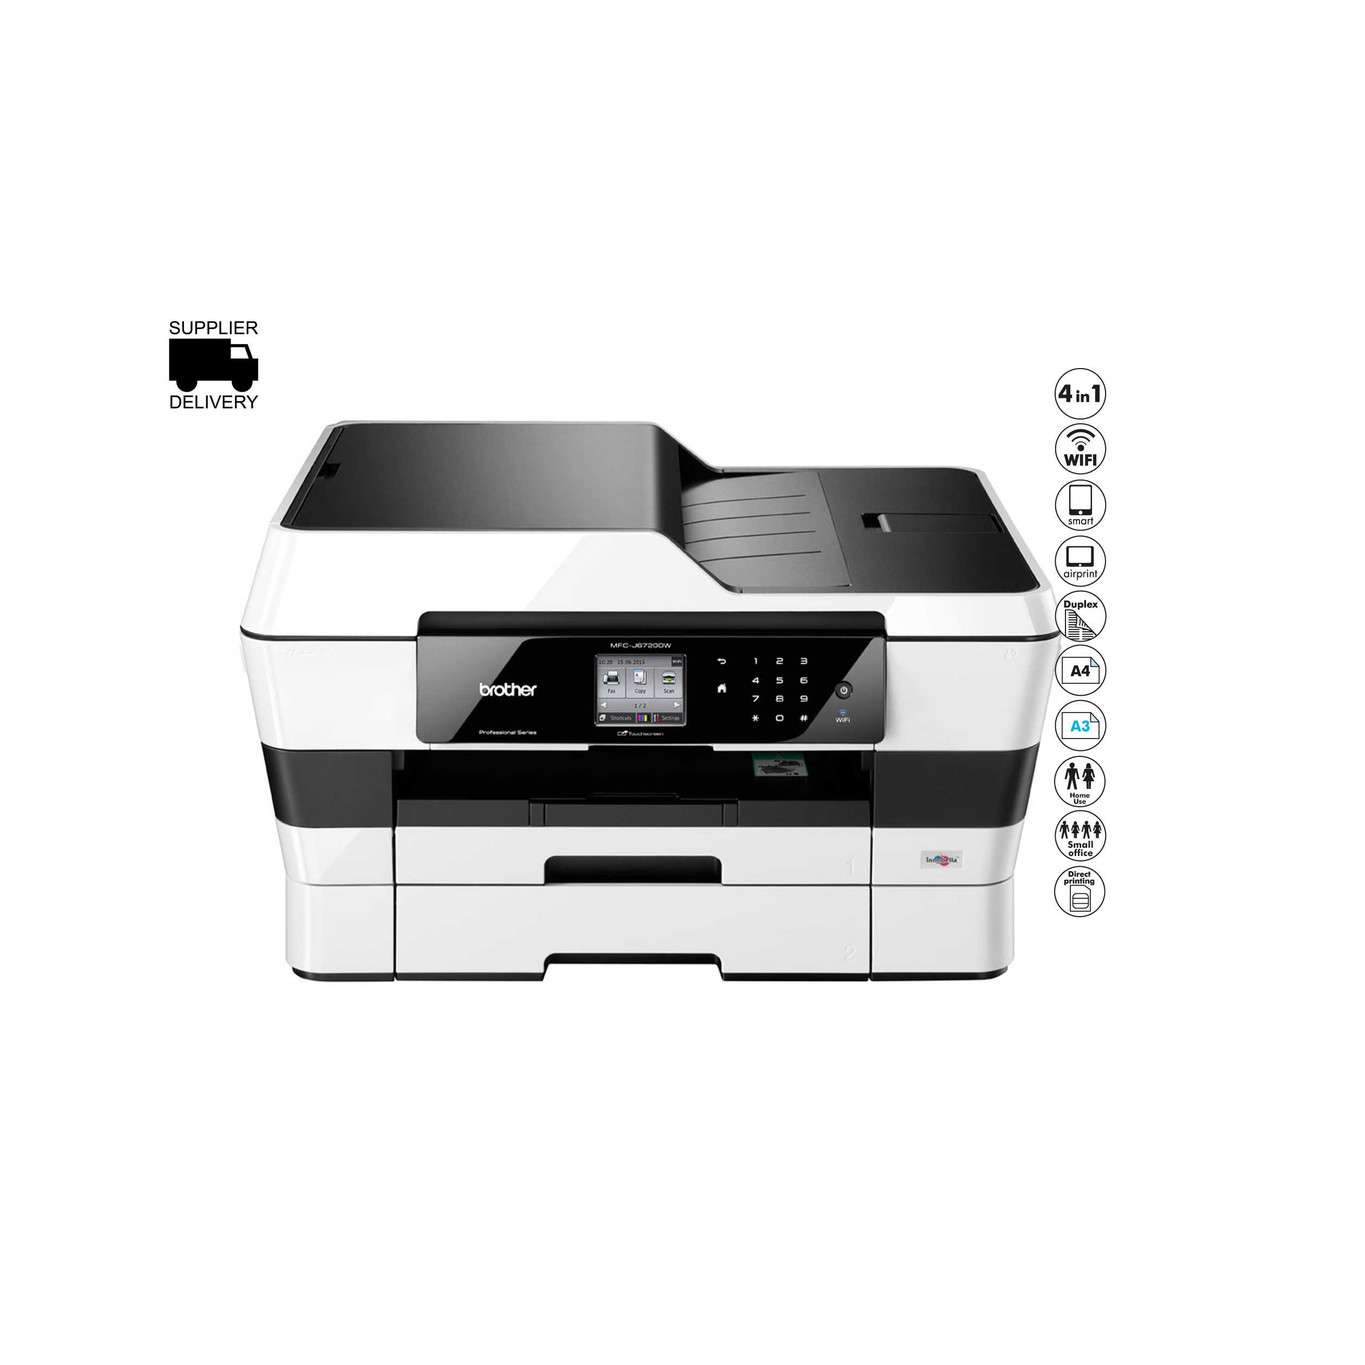 Scanner Near Me >> Brother Mfc J6720dw A3 Wifi Printer Copier Scanner Fax